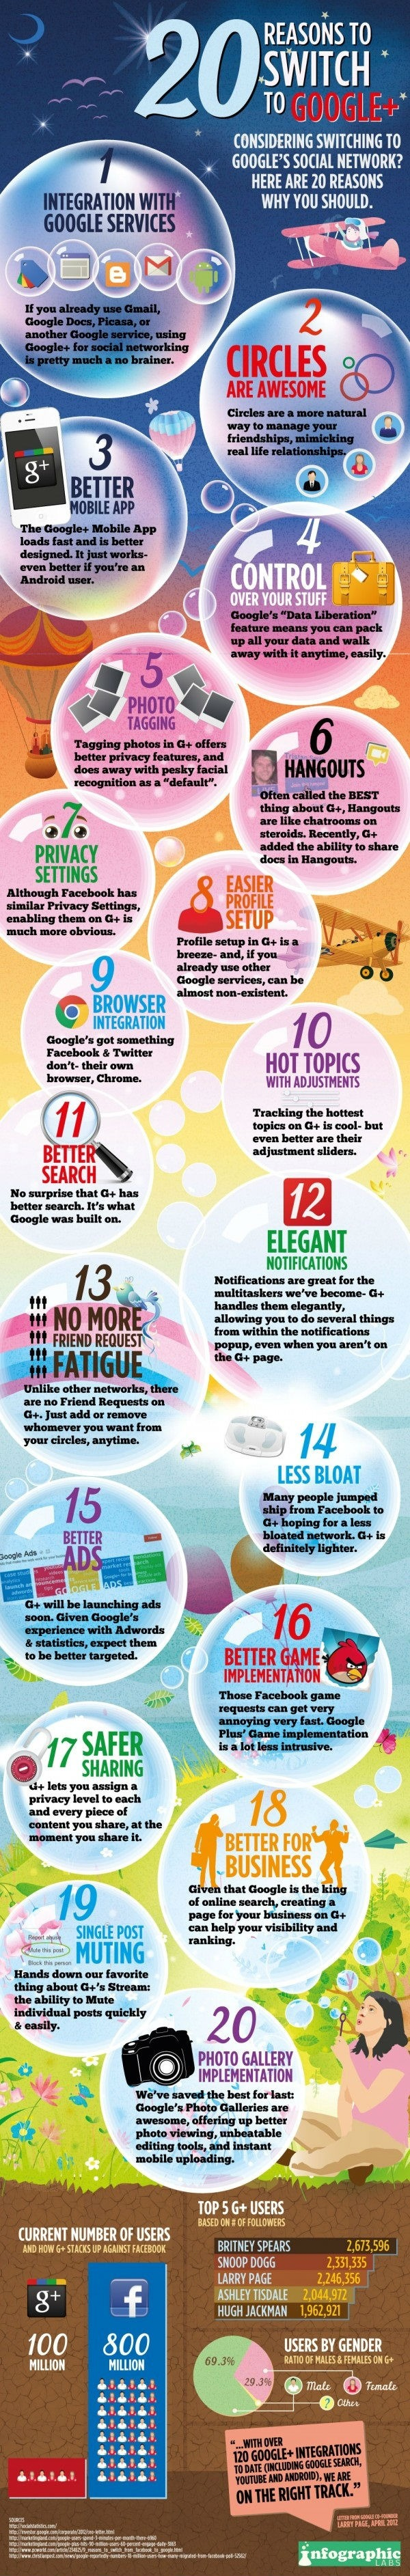 google+Infographic 20 reasons to switch to google+